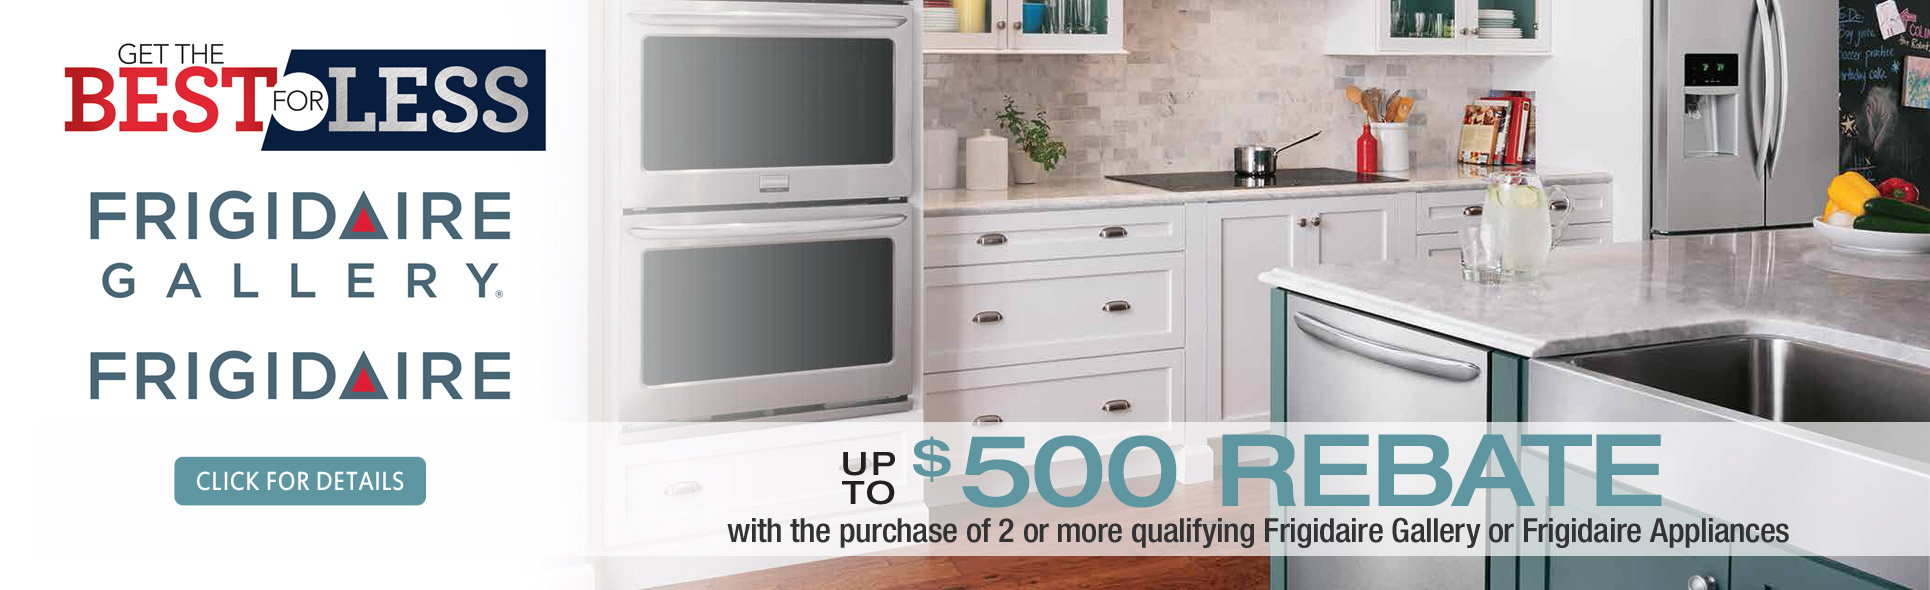 Frigidaire Best For Less- Save up to $500